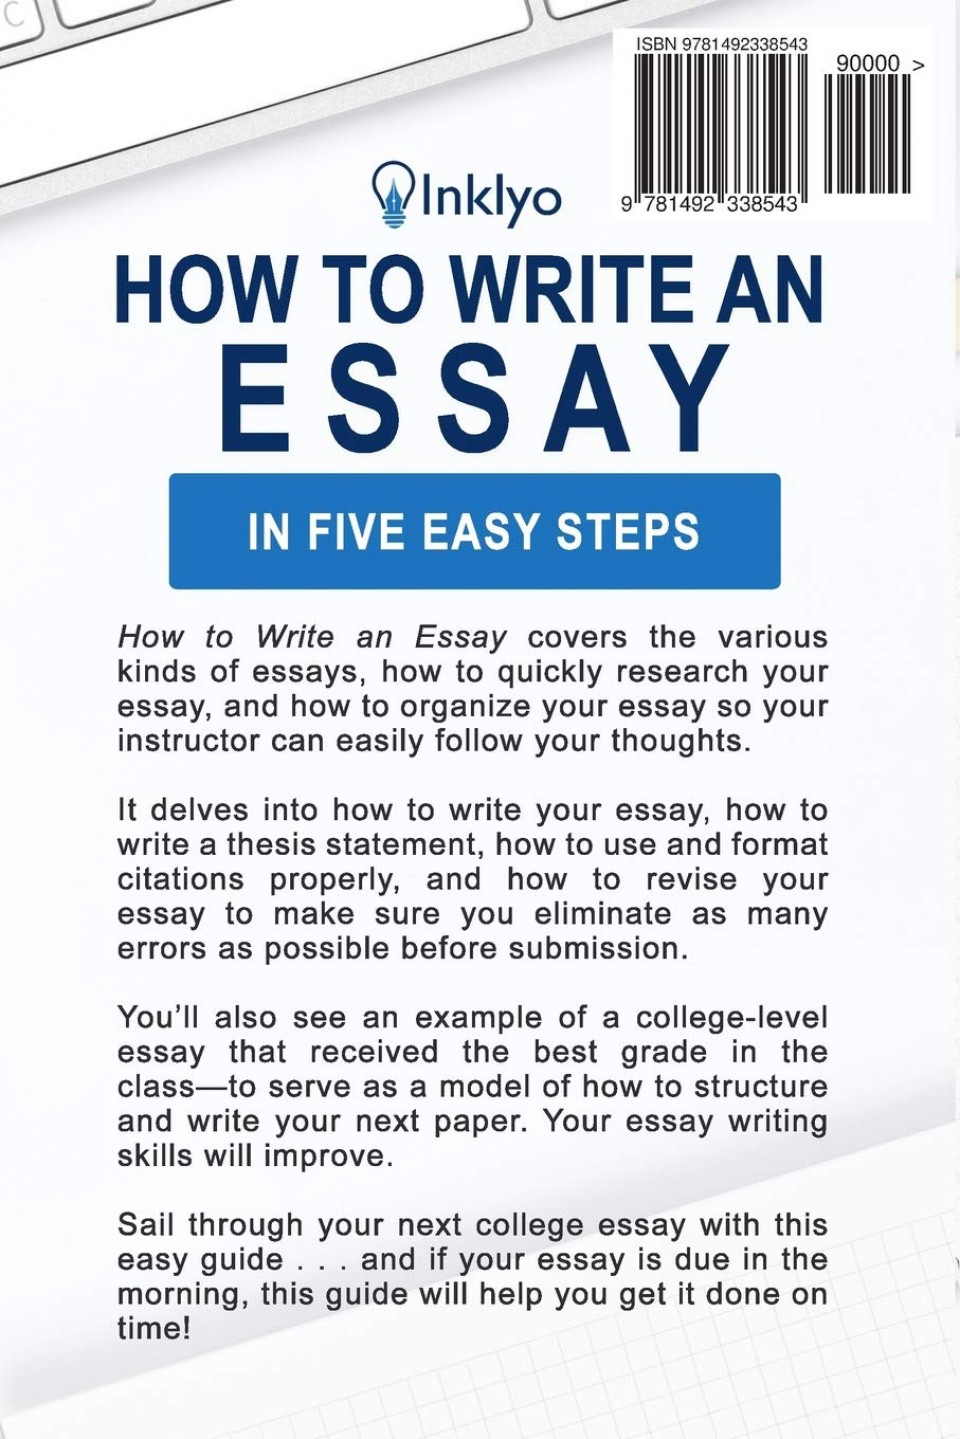 002 How To Write An Essay Example Shocking In Mla Format Word 2013 About Yourself For College Application 960